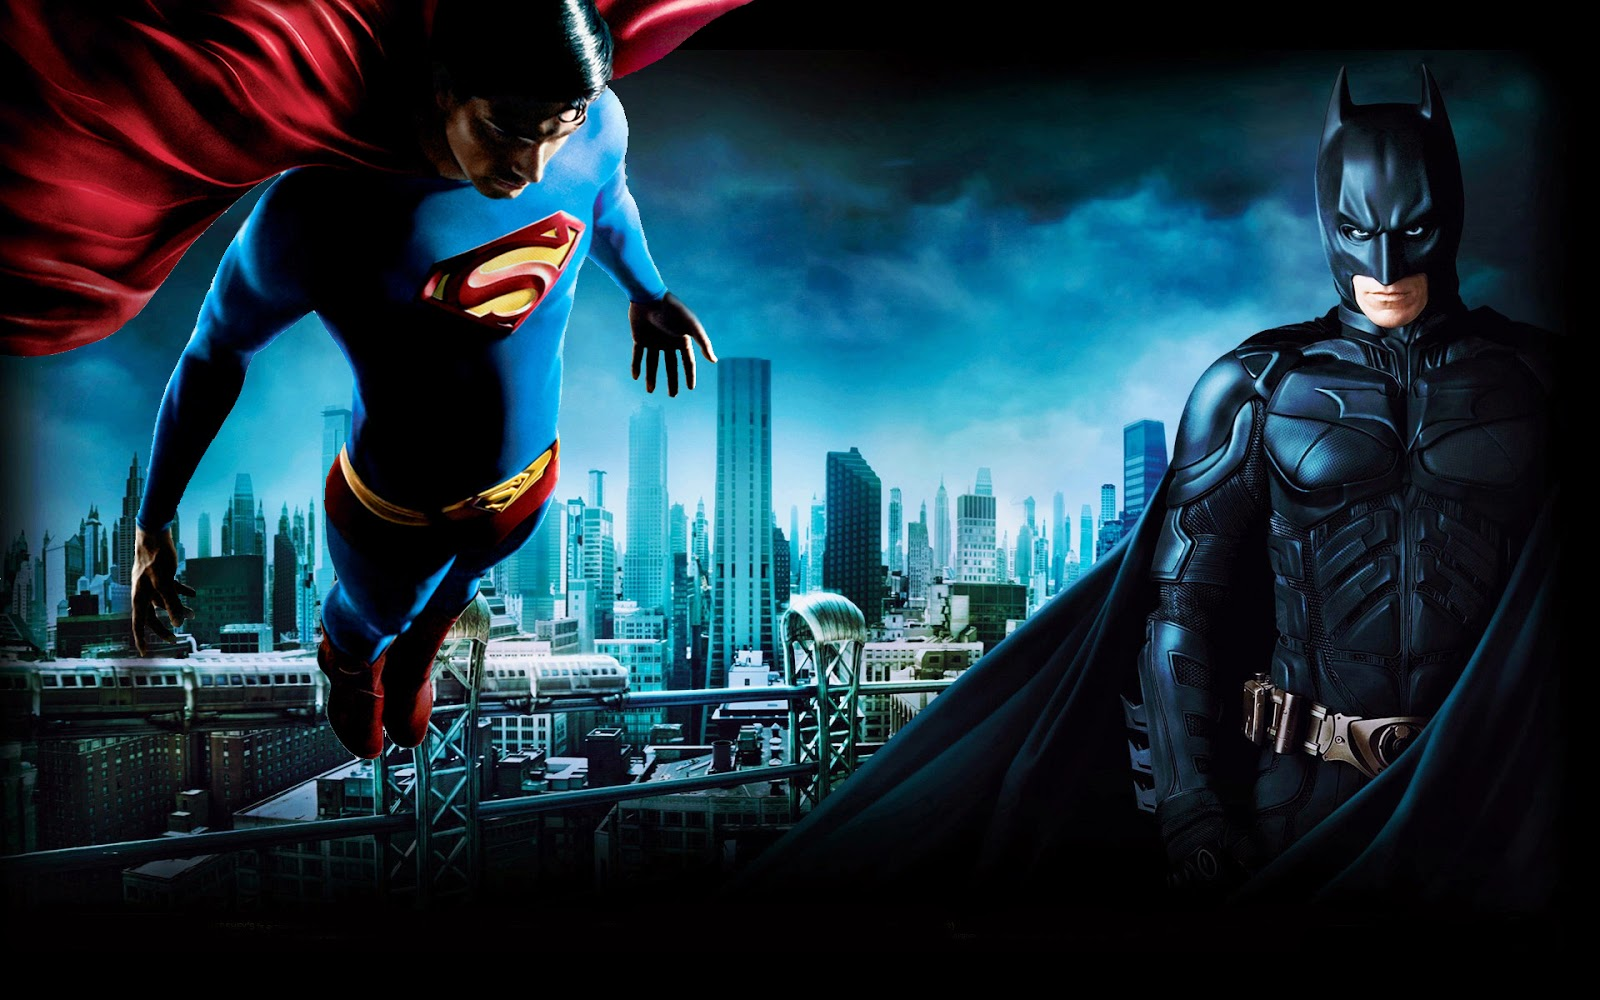 Batman Vs Superman HD Wallpapers Wallpaper Mansion 1600x1000